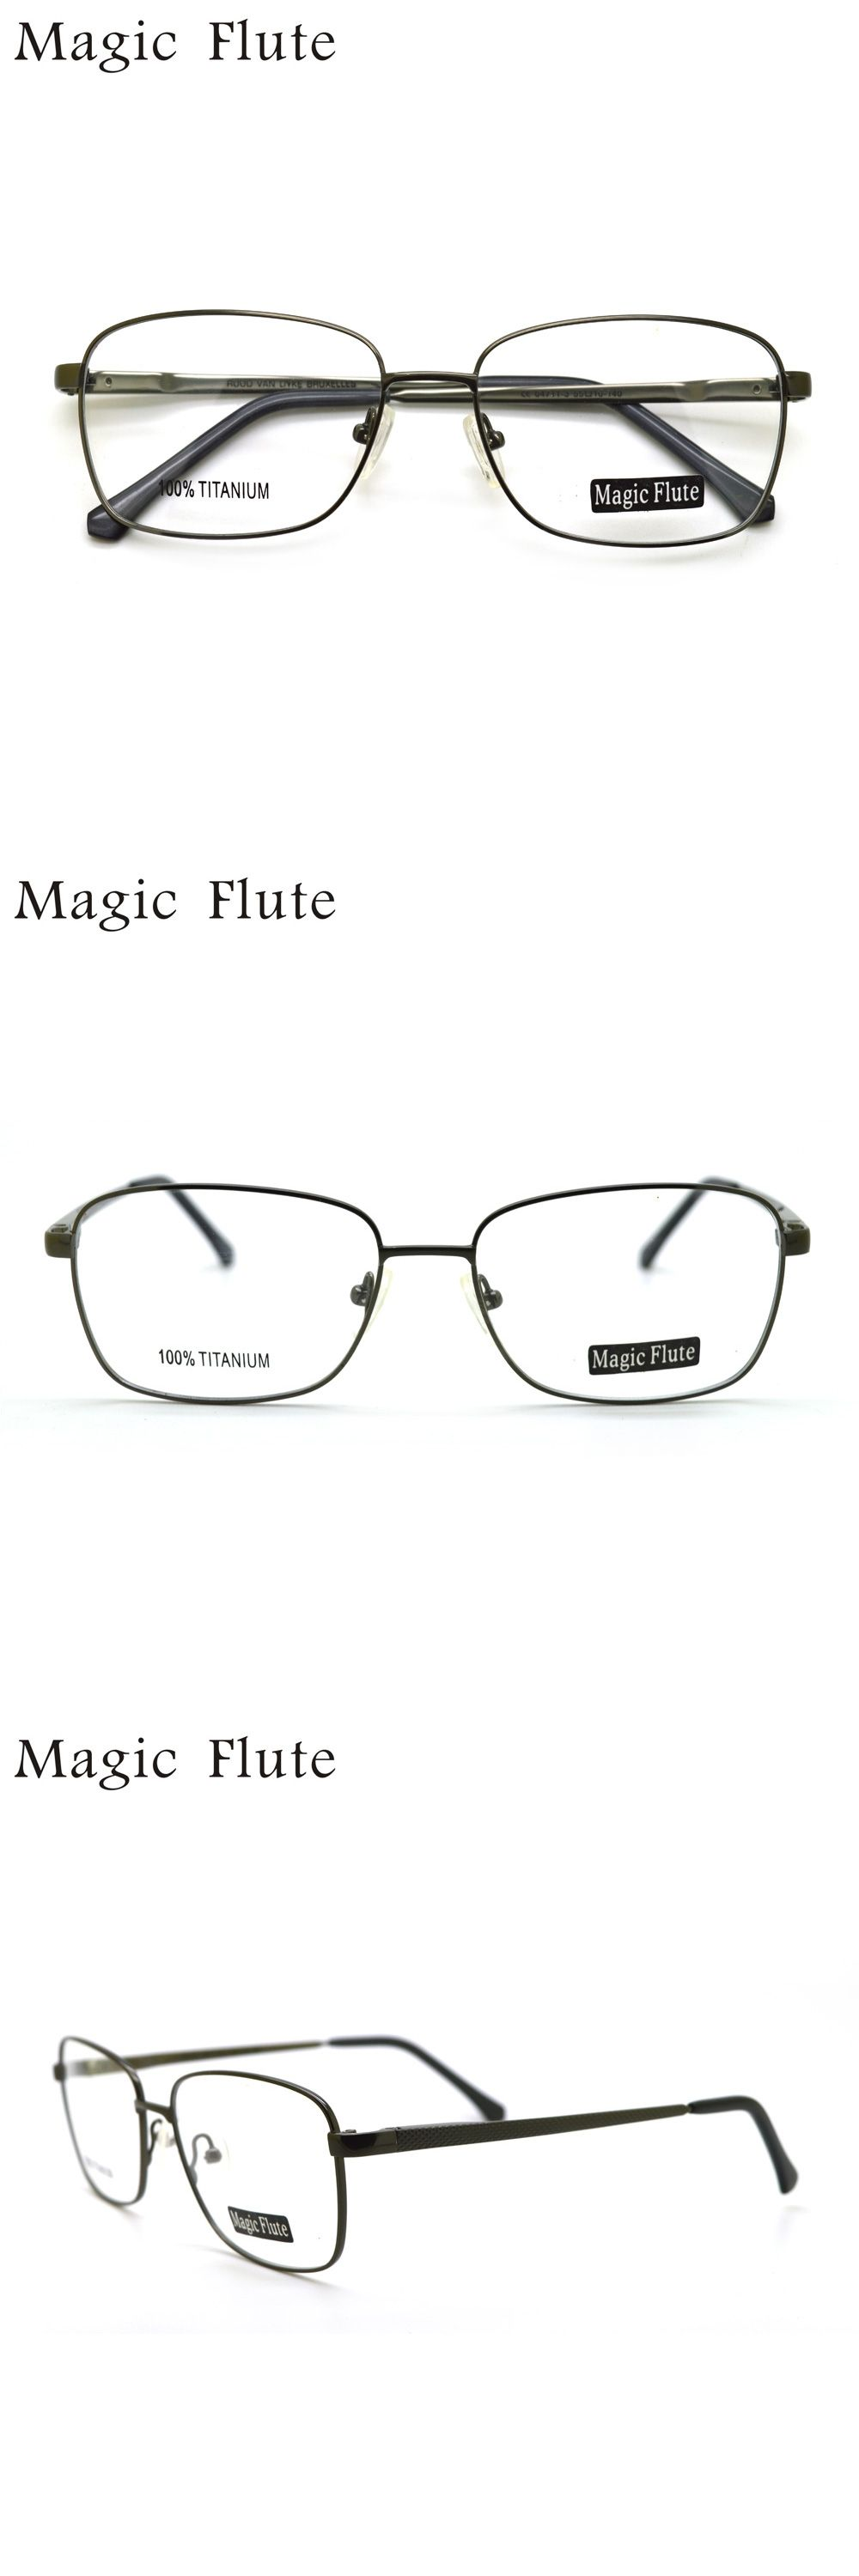 5ac6558d5c6 2017 New Arrival titanium light optical frames eyeglasses Full frame for men  or women fashion prescription